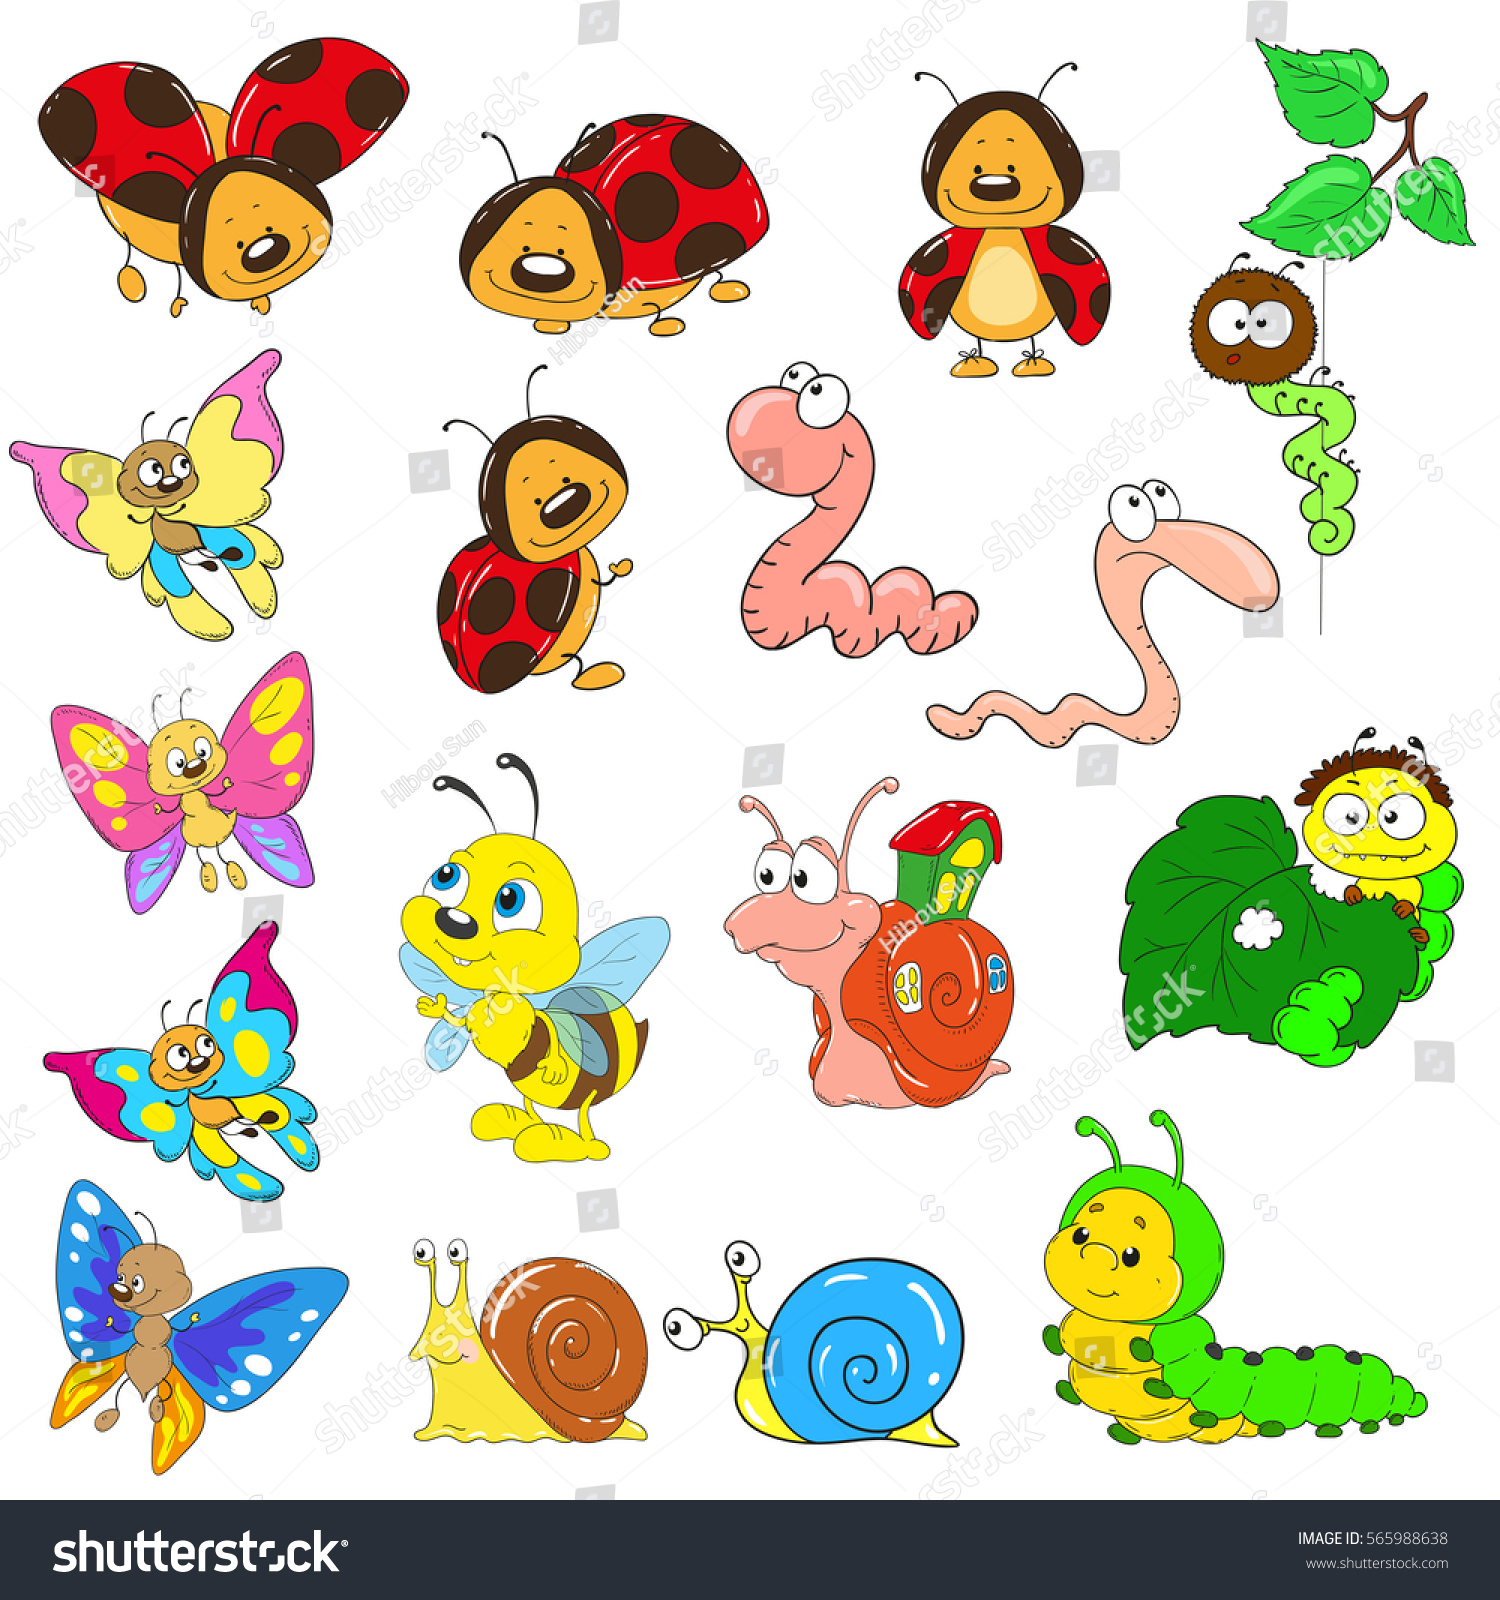 set cartoon characters on white background stock vector 565988638